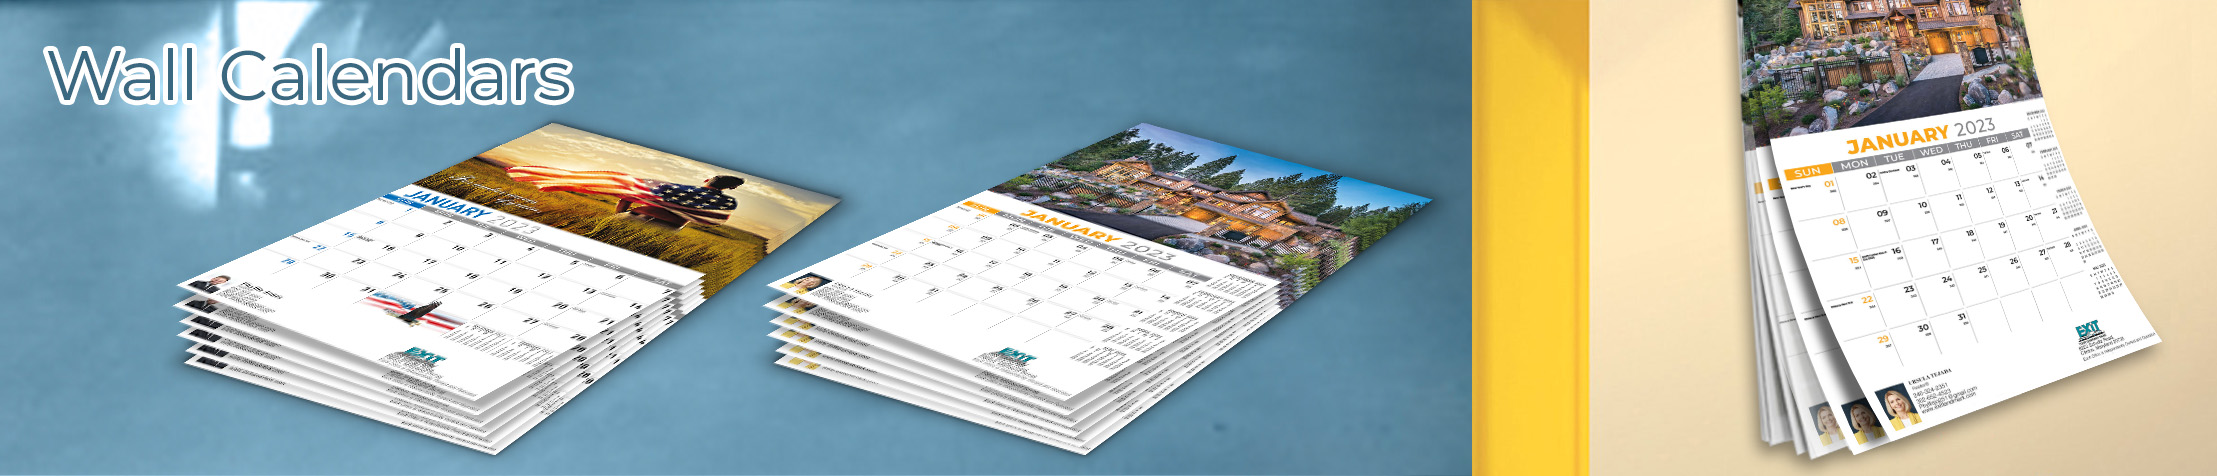 Exit Realty Wall Calendars - Exit Realty approved vendor 2019 wall calendars | BestPrintBuy.com